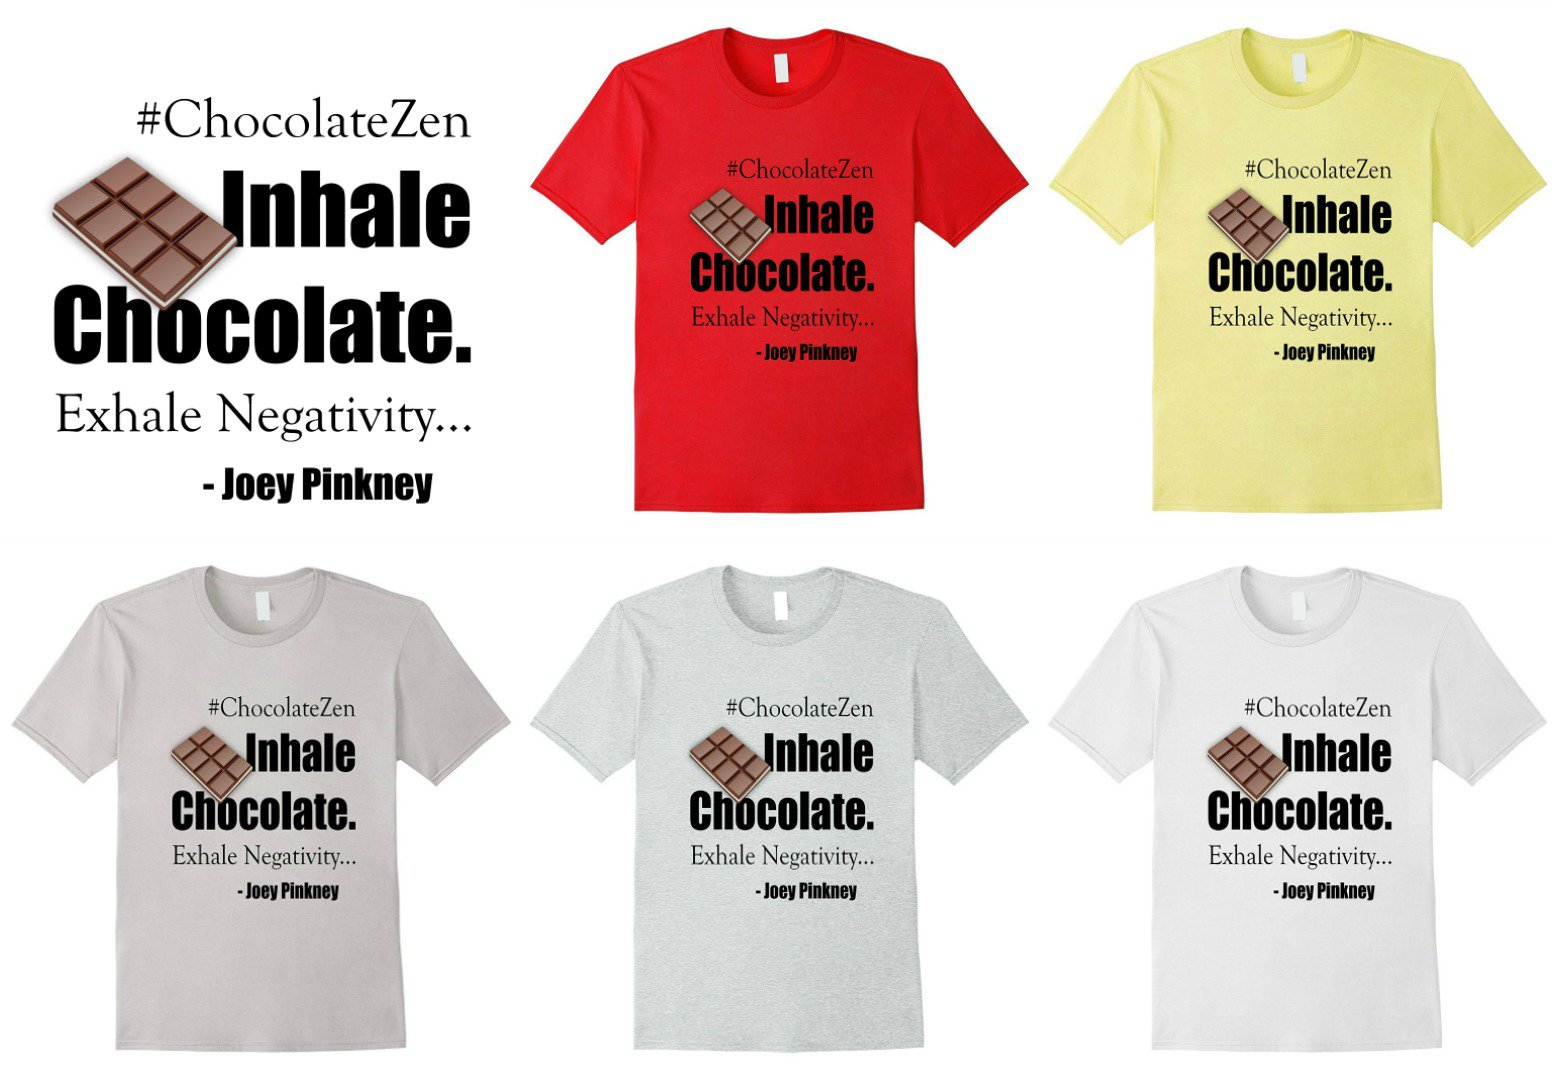 Do you love #chocolate? Then this is a perfect #tshirt for you. #amazon #merch #tshirts https://t.co/N6I5qq4R3L https://t.co/ga2frqQfQv